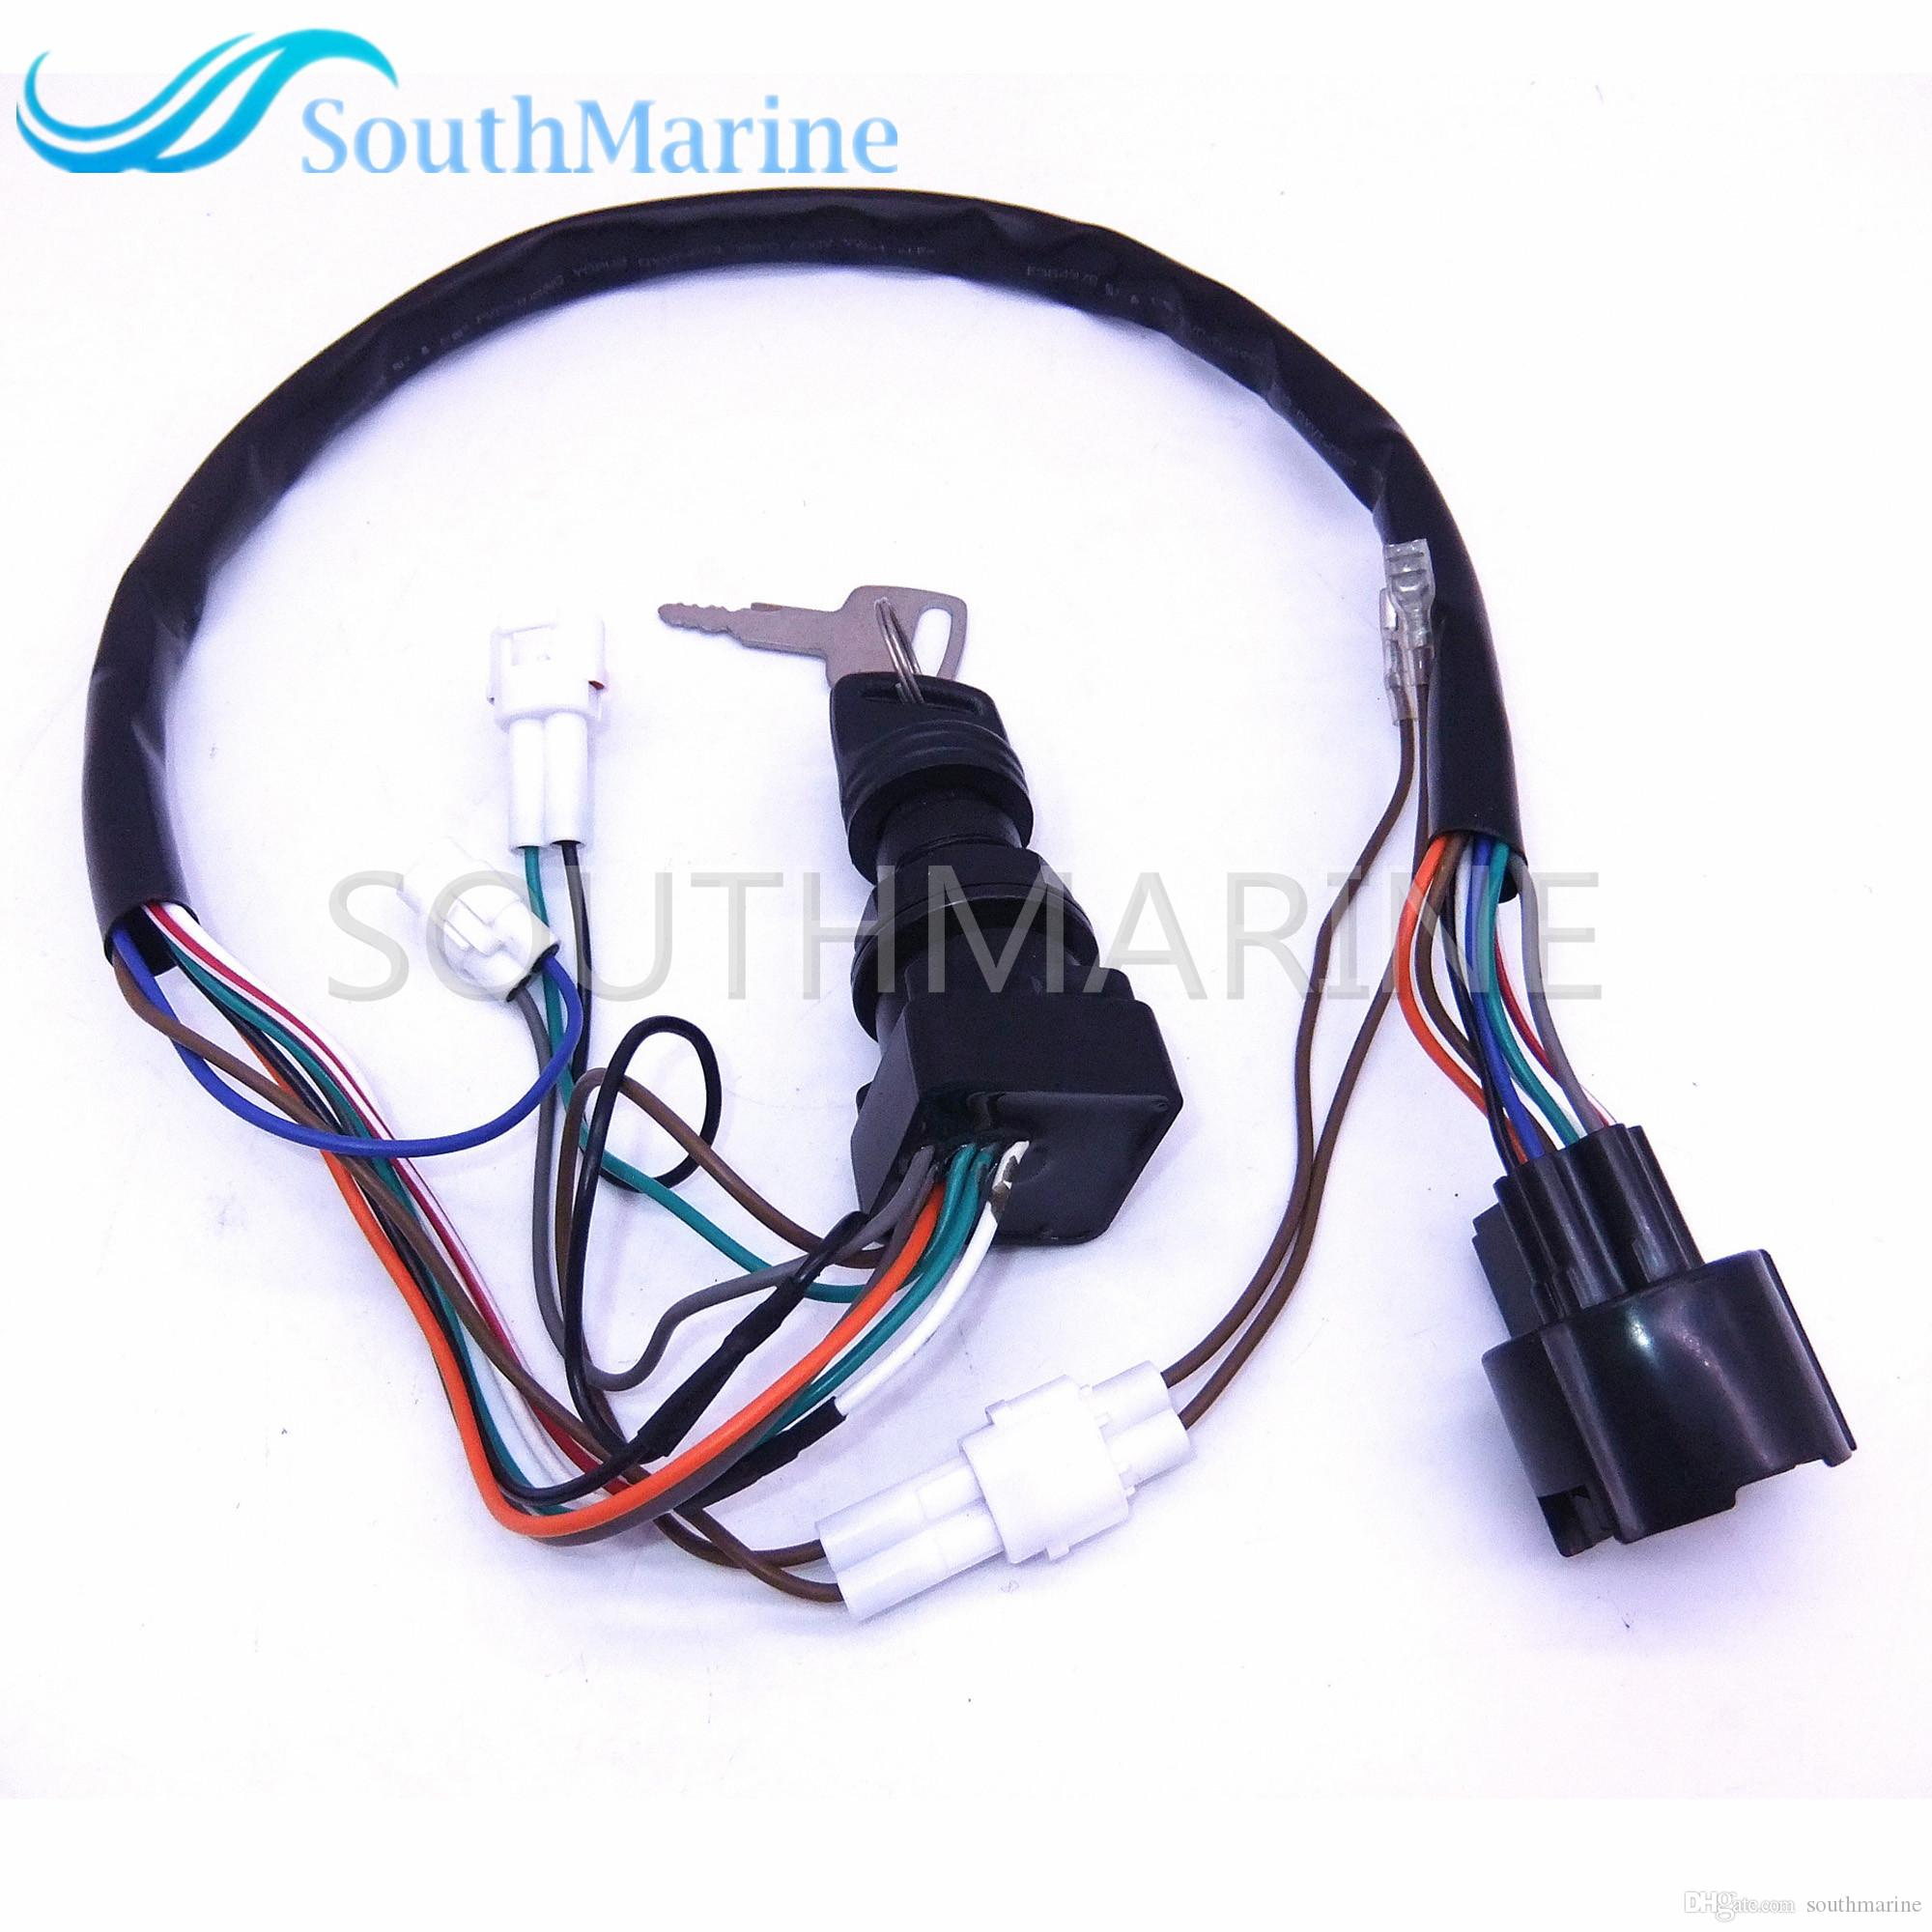 37110 93j00 93j01 Boat Motor Ignition Switch Assembly For Thread Wire Help Suzuki Outboard Motors Online With 7984 Piece On